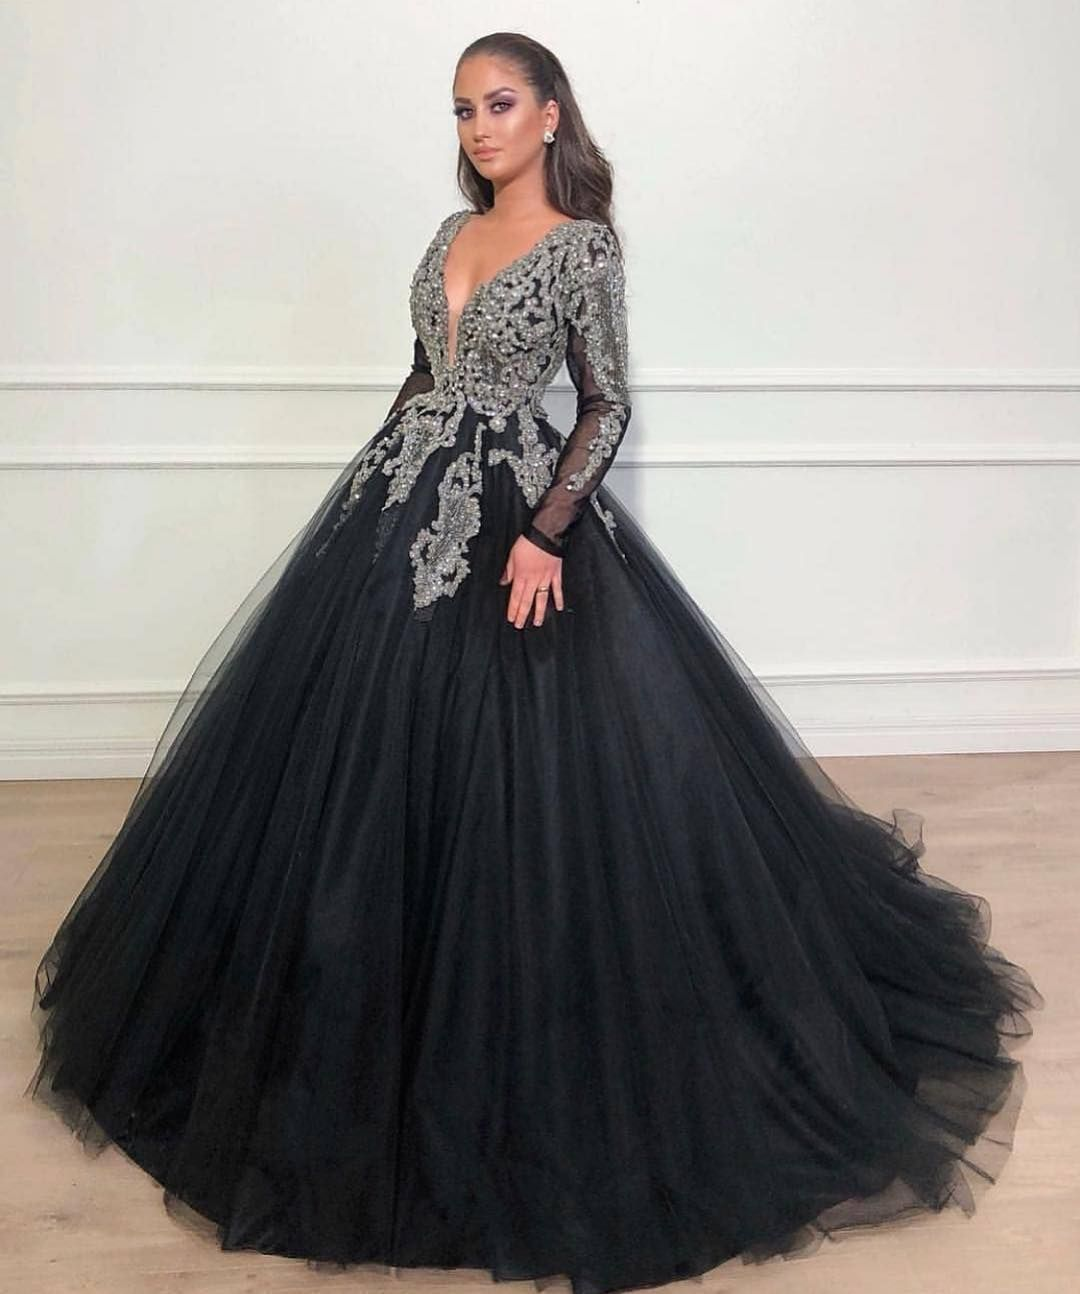 Custom Evening Dresses Couture Formal Ball Gowns Black Prom Dresses Long Sleeve Ball Gowns Black Ball Gown